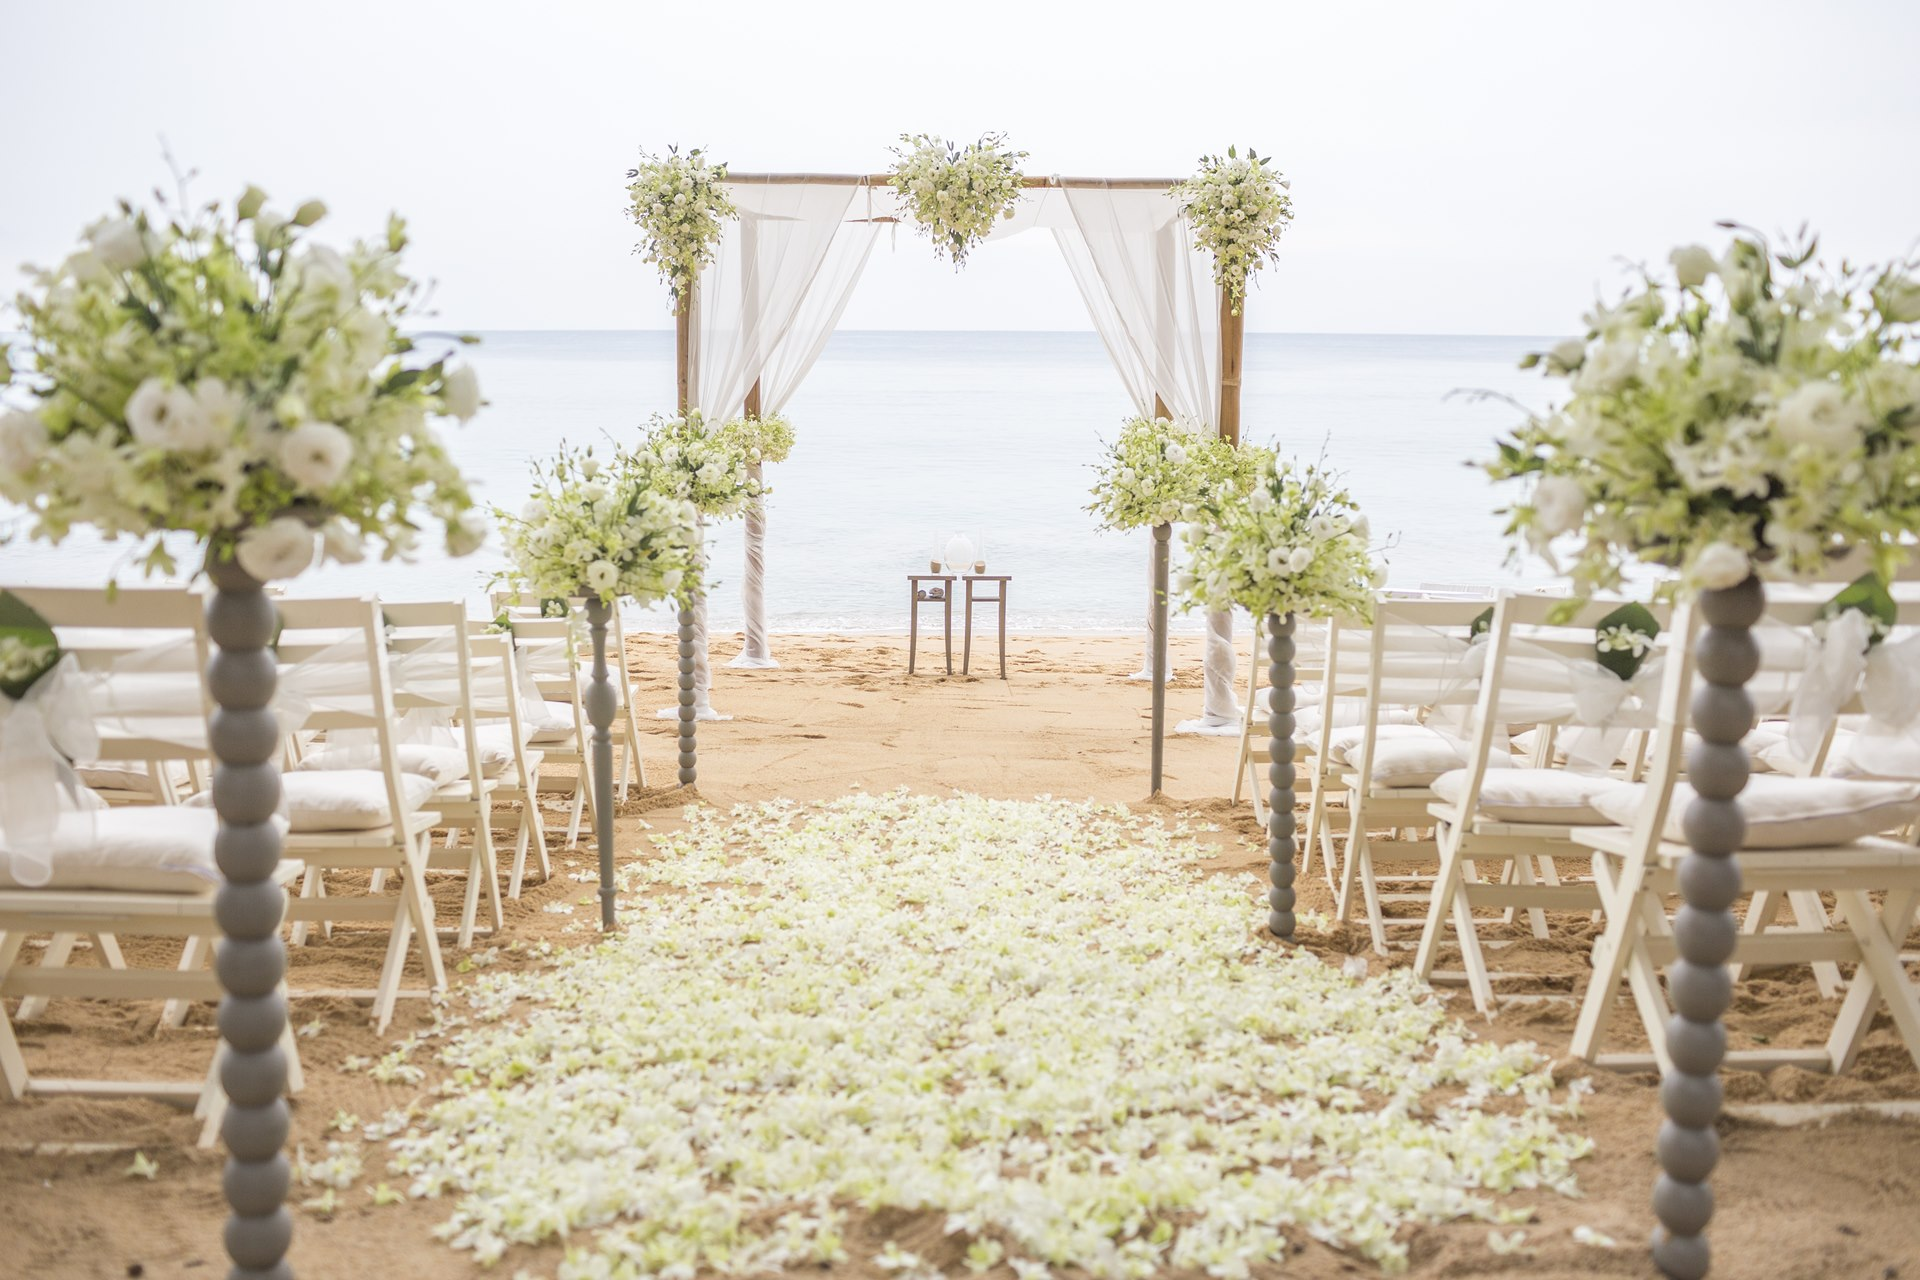 The most beautiful locations for a wedding ceremony